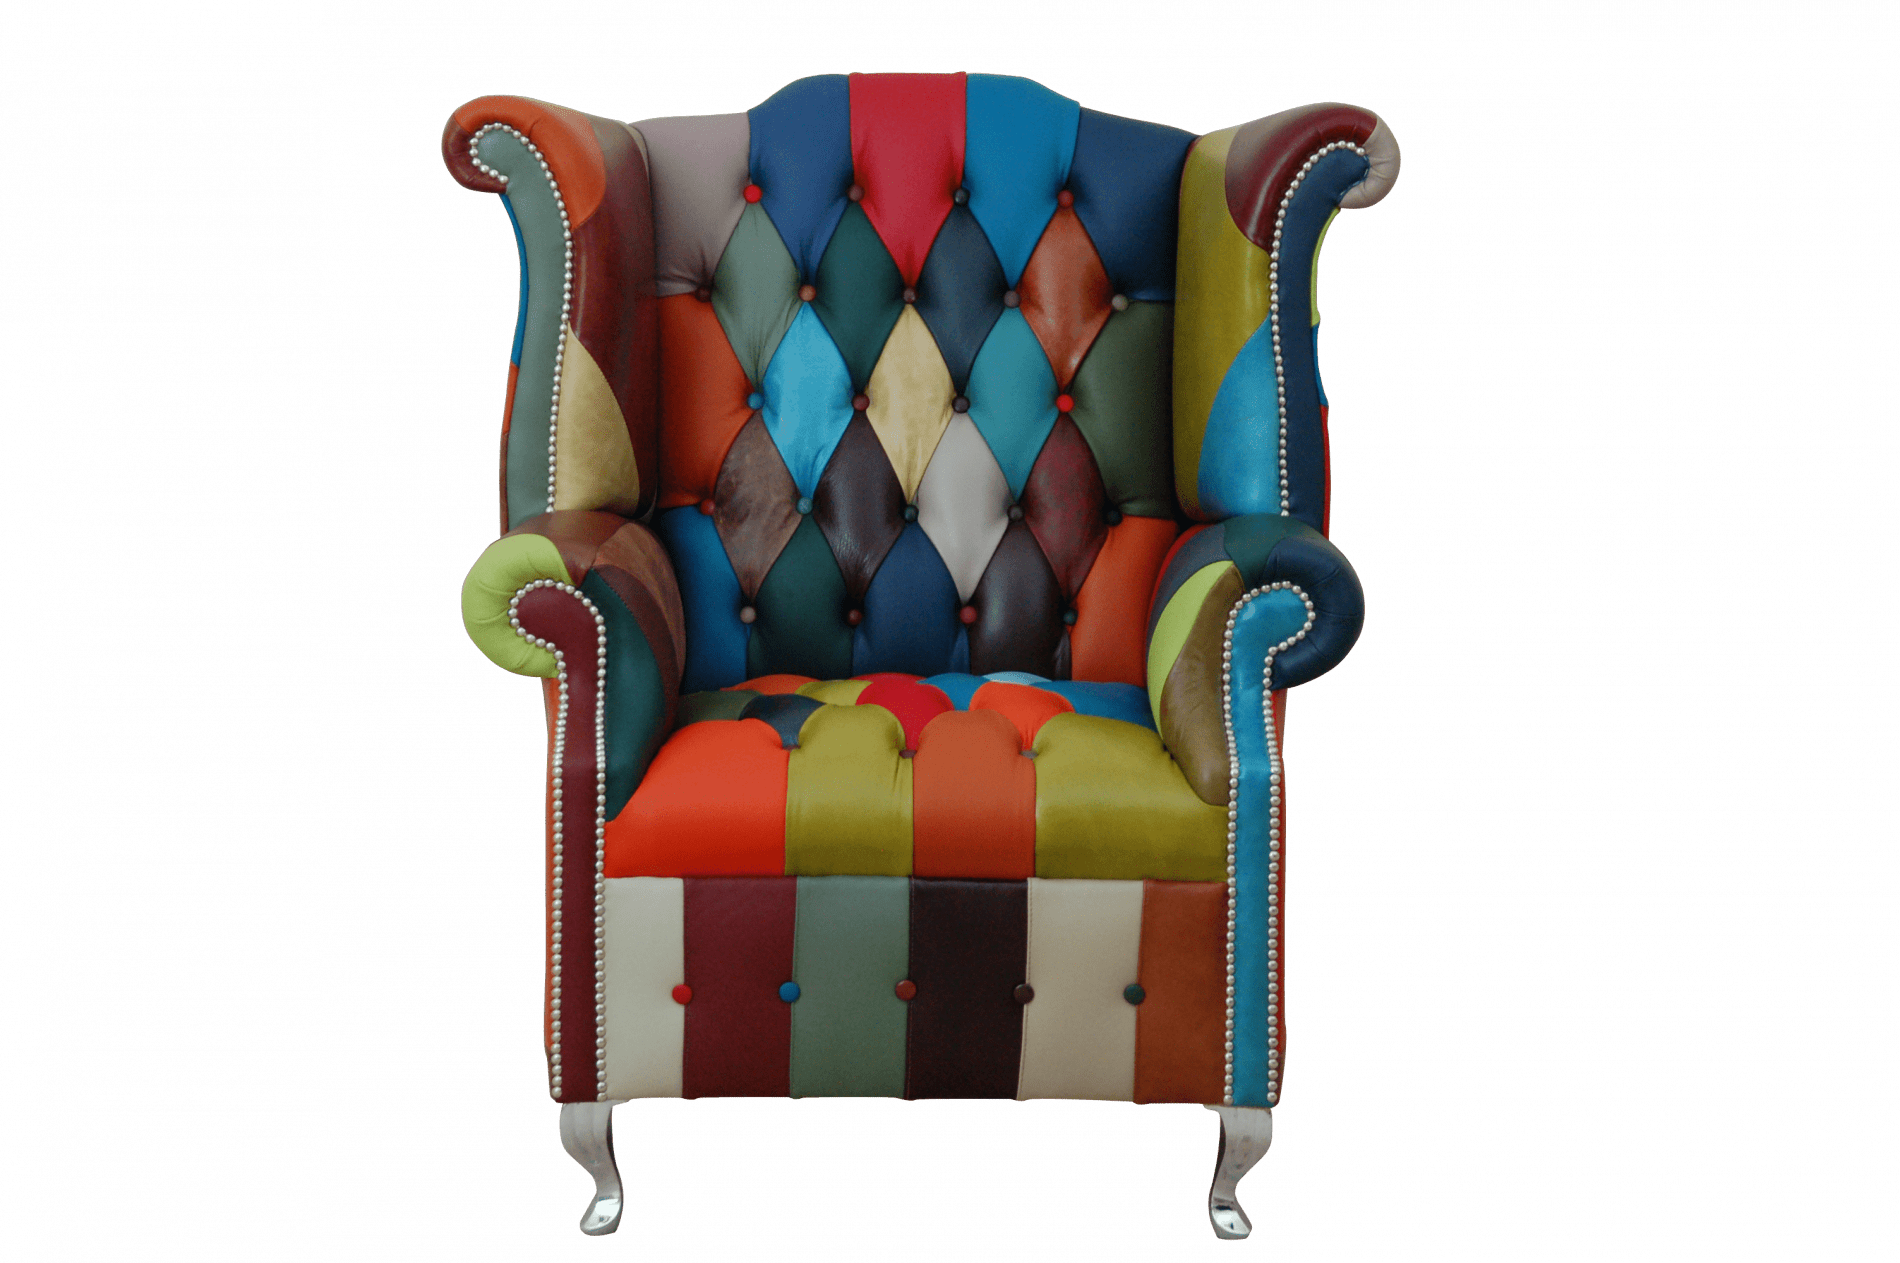 delta-chesterfield-eigentijds-multi-color-hb-scrolwing-button-seat-uitgeknipt